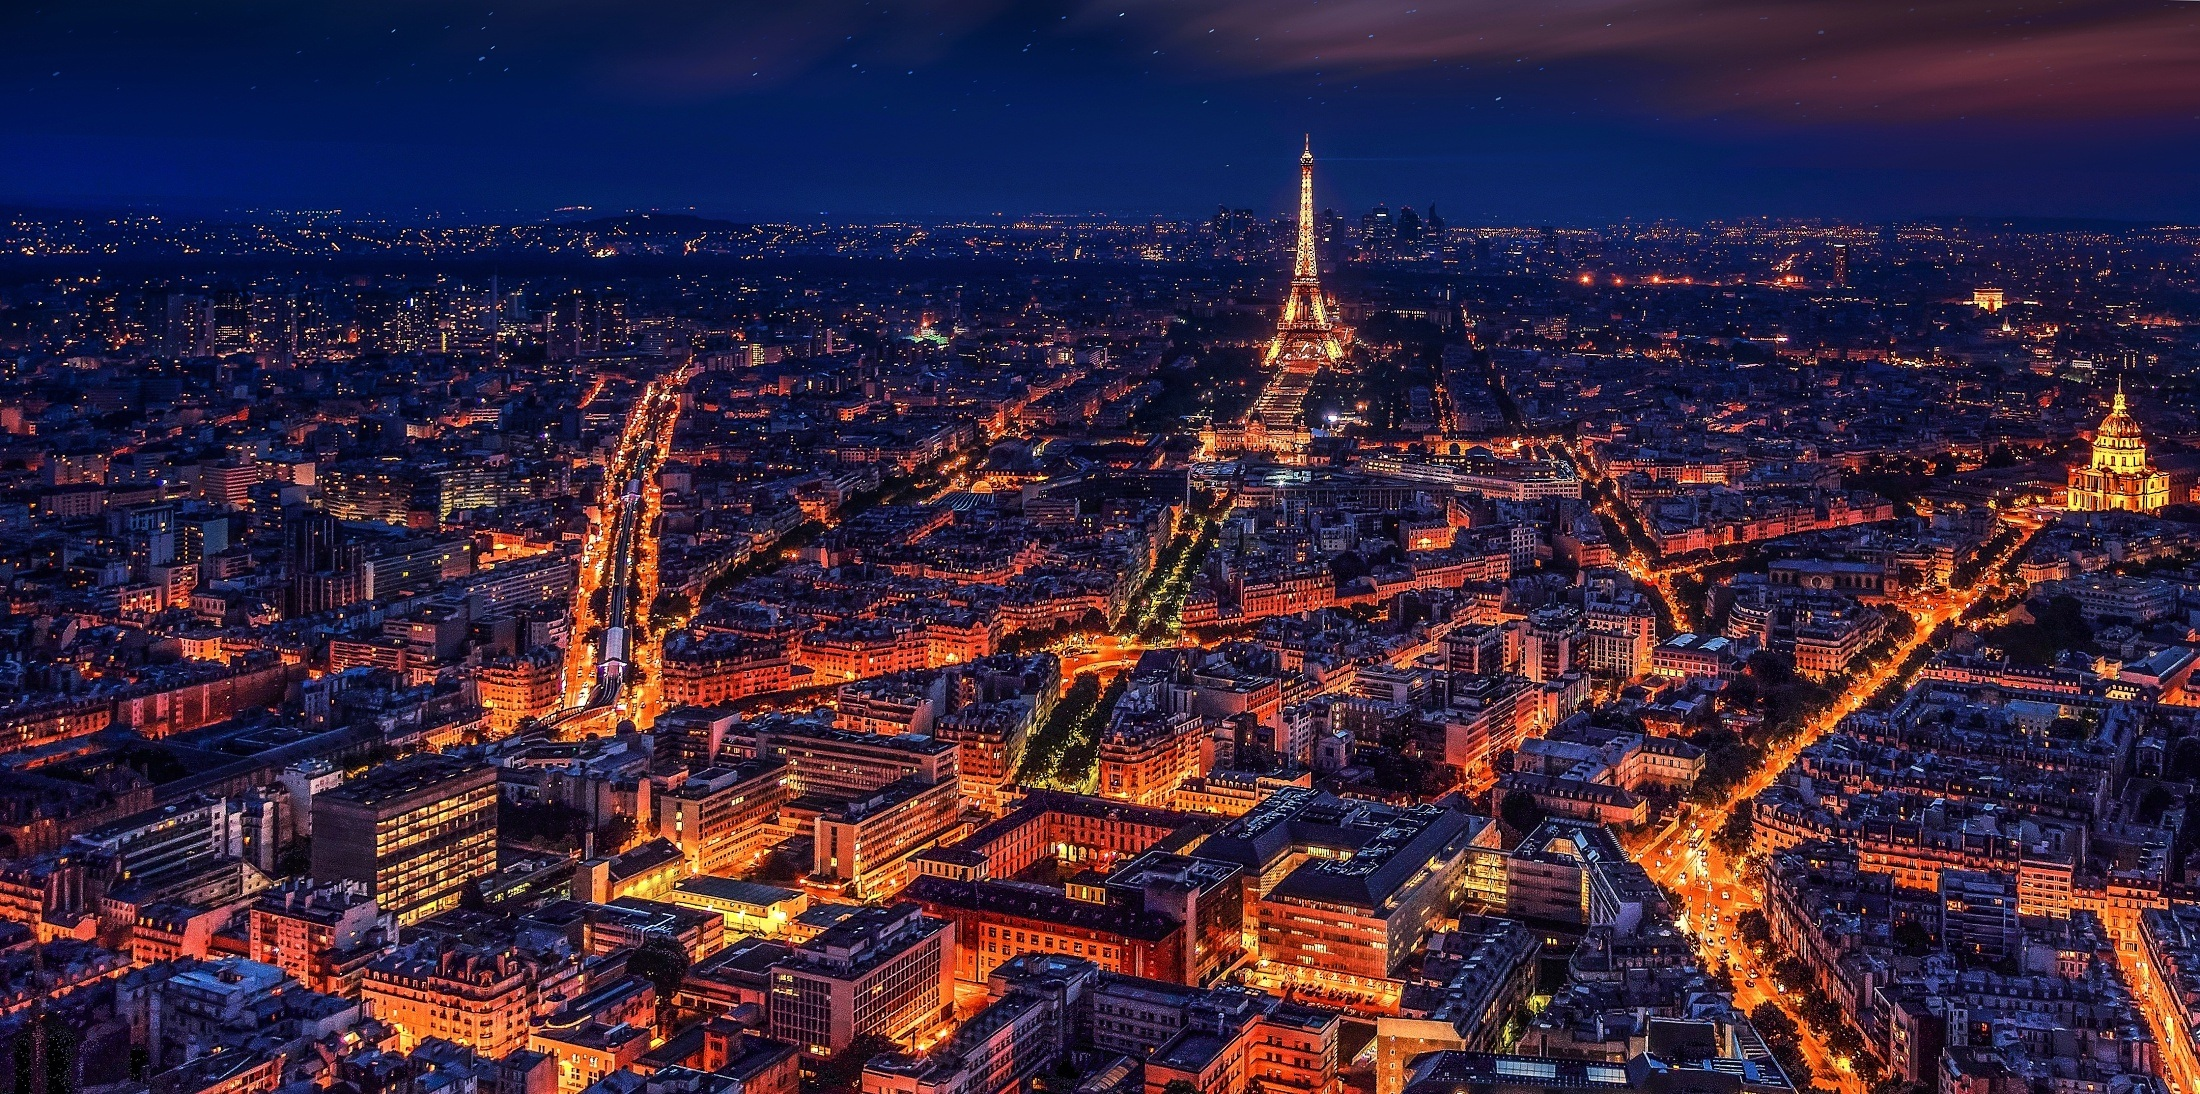 Paris-nuit-Tour-Eiffel